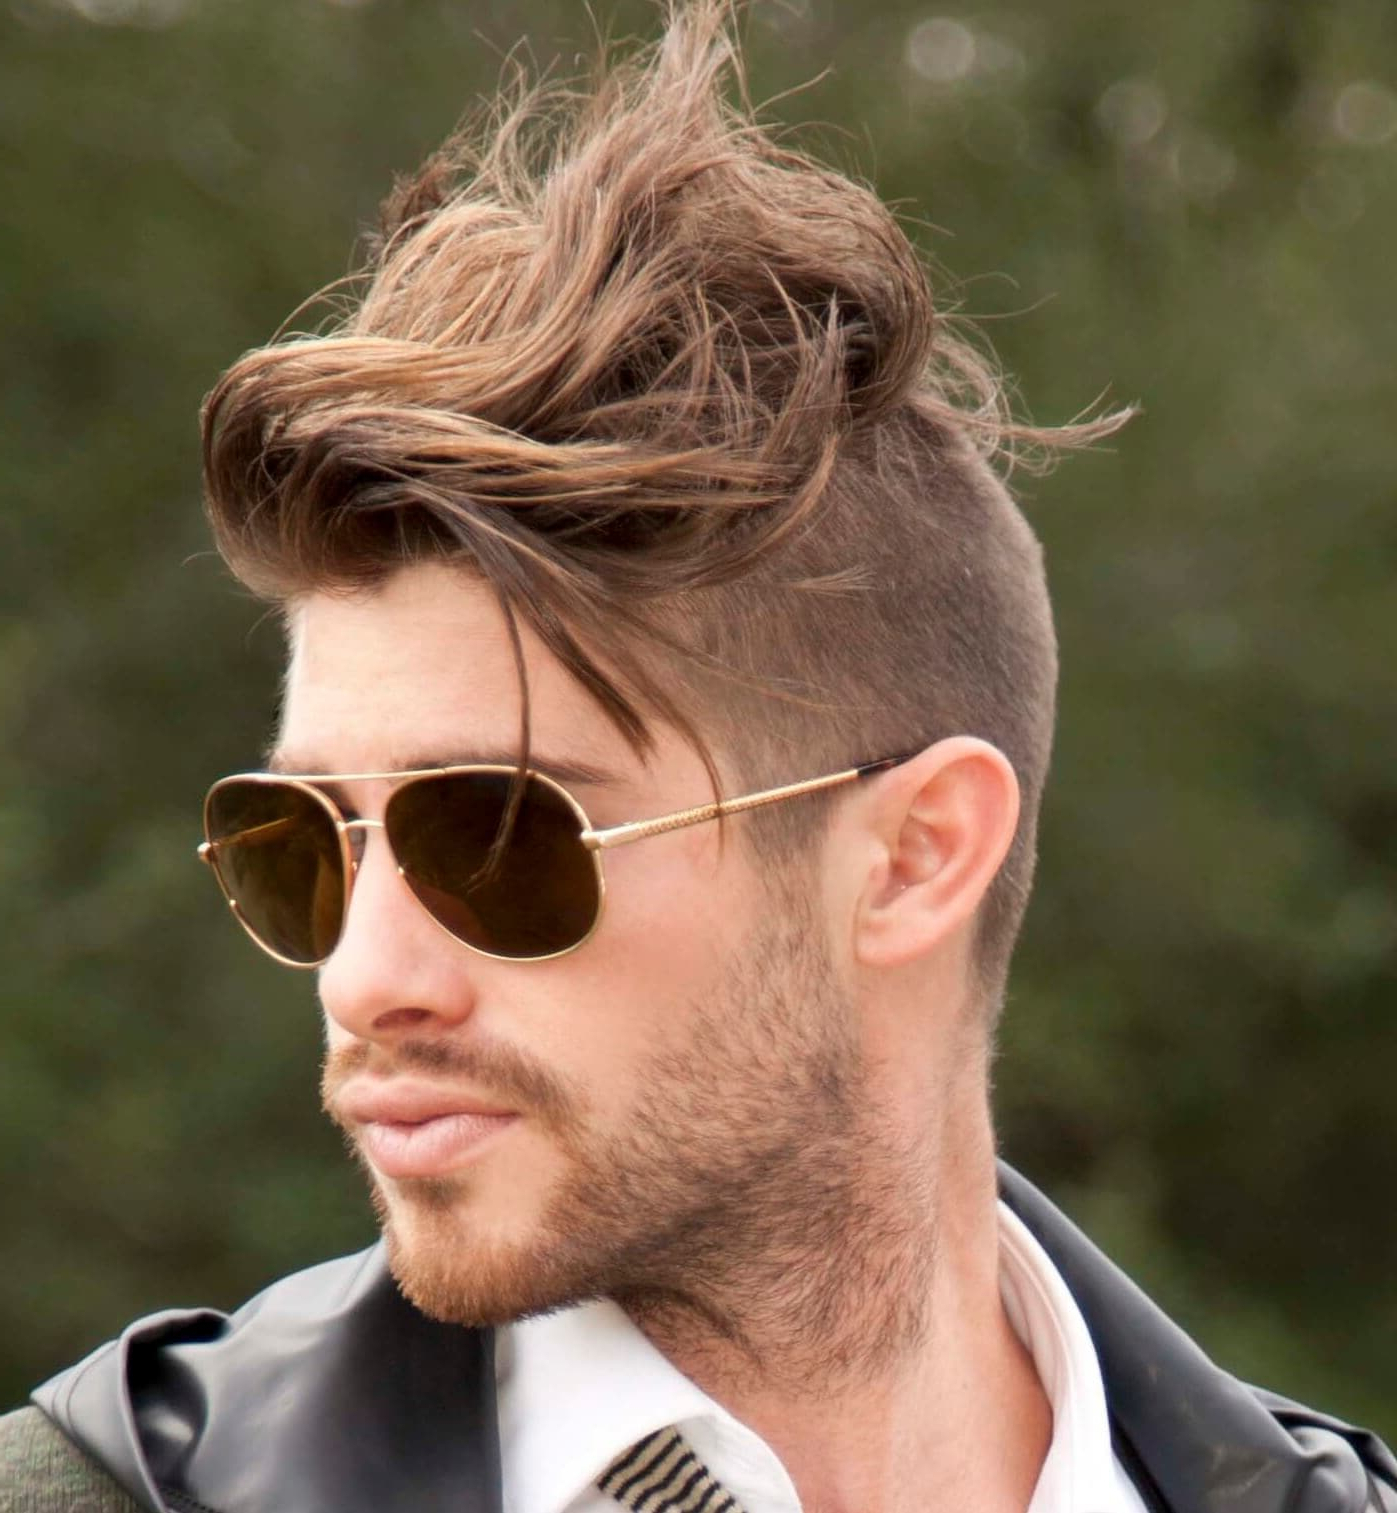 Mohawk Hairstyle For Men: 17 Cool Styles To Inspire Your Next Look Within Trendy Barely There Mohawk Hairstyles (View 13 of 20)